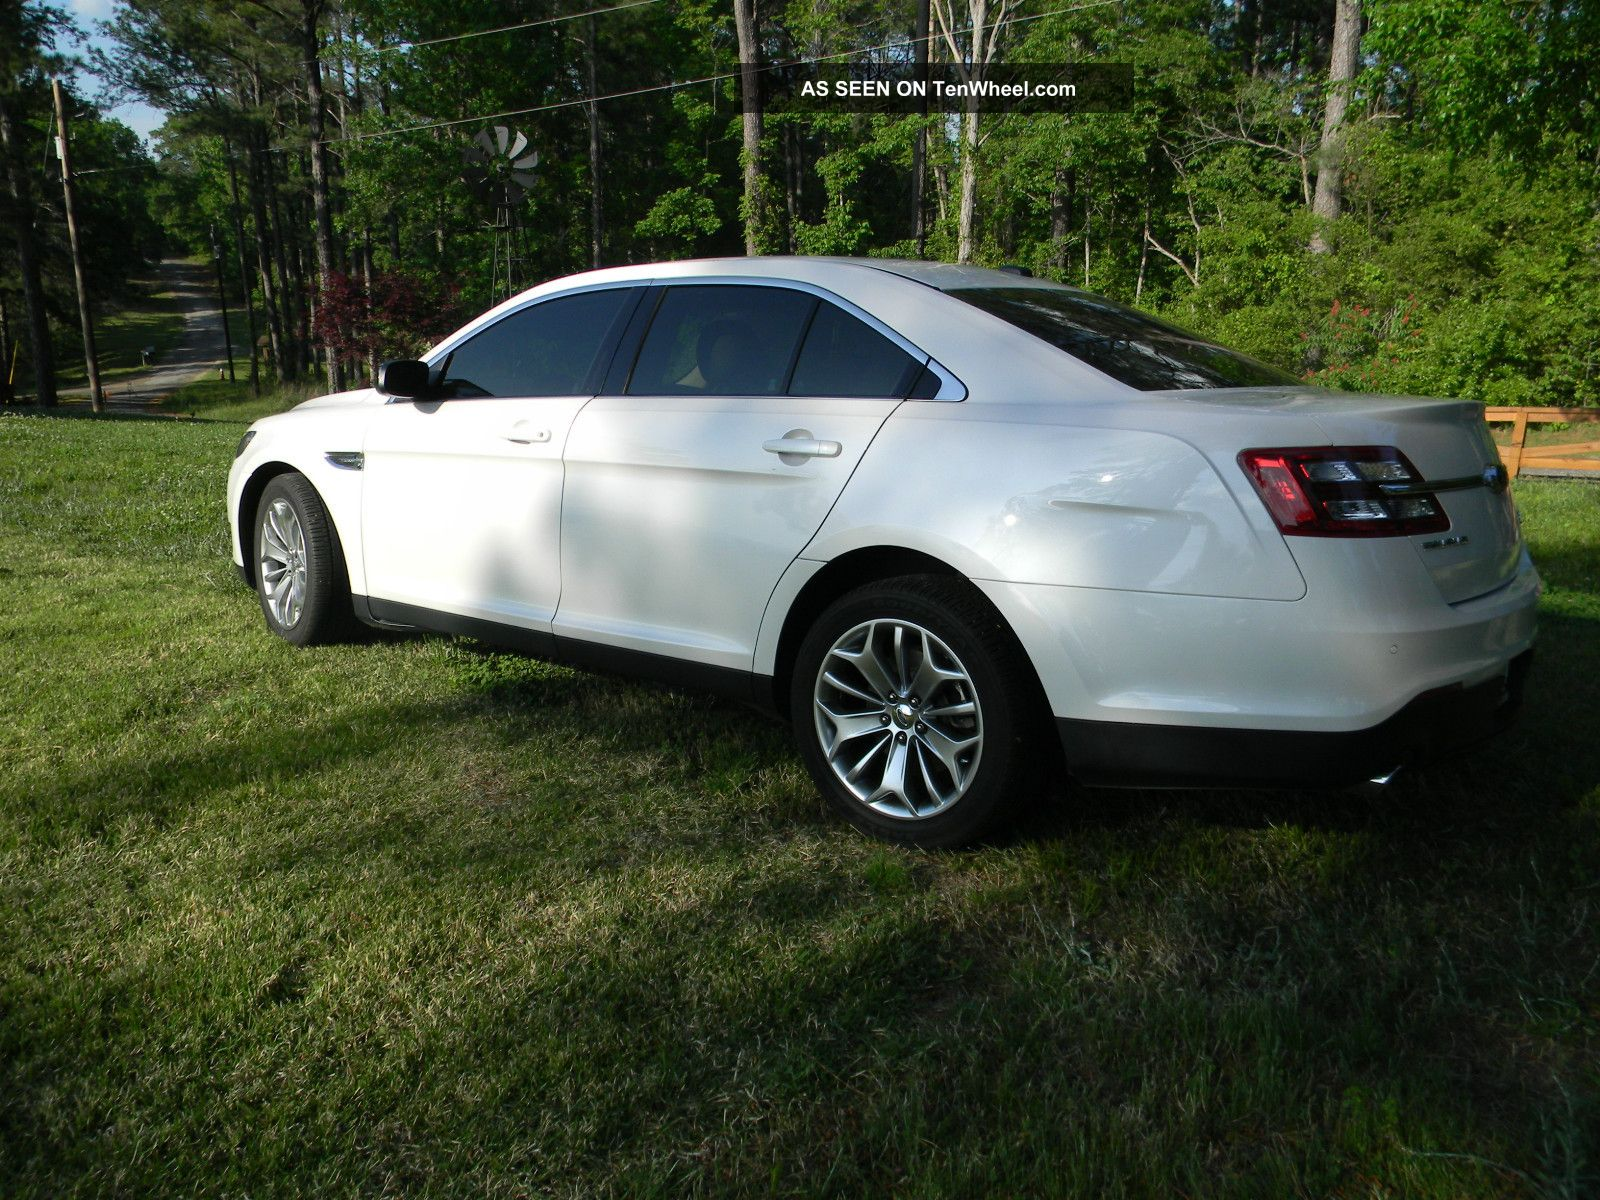 2013 ford taurus limited sedan 4 door 3 5l taurus photo. Cars Review. Best American Auto & Cars Review